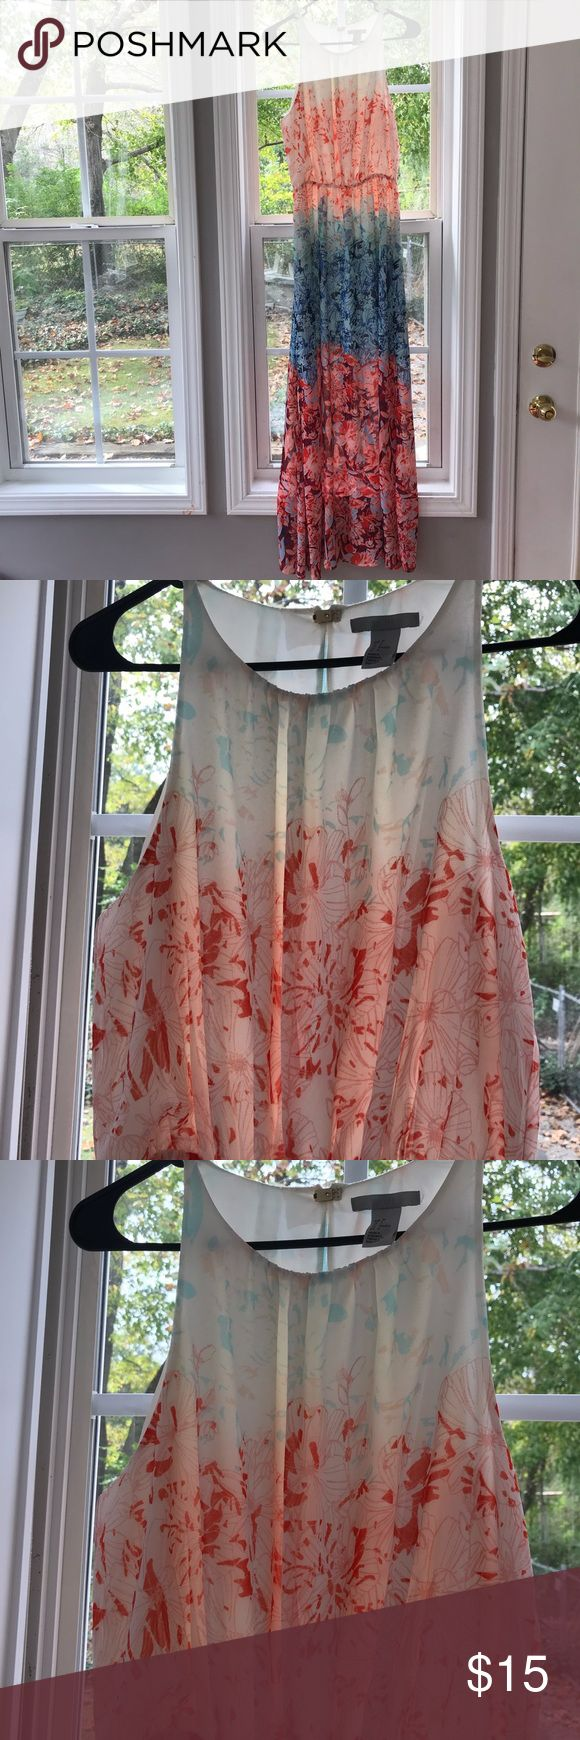 H&M sleeveless maxi dress size 6 Beautiful pre-owned, but in excellent condition, H&M sleeveless maxi dress in size 6. Bust measures 36 inches. Length measures 54 inches with 22 inch side slits. It is lined until above the knee. Ombré effect. Colors range from cream, Coral, pink, to blue. There is a small elastic waist band. It is a pullover with a clip in the back for closure. Material is Polyester. Gorgeous for a beach wedding or Sunday brunch. H&M Dresses Maxi